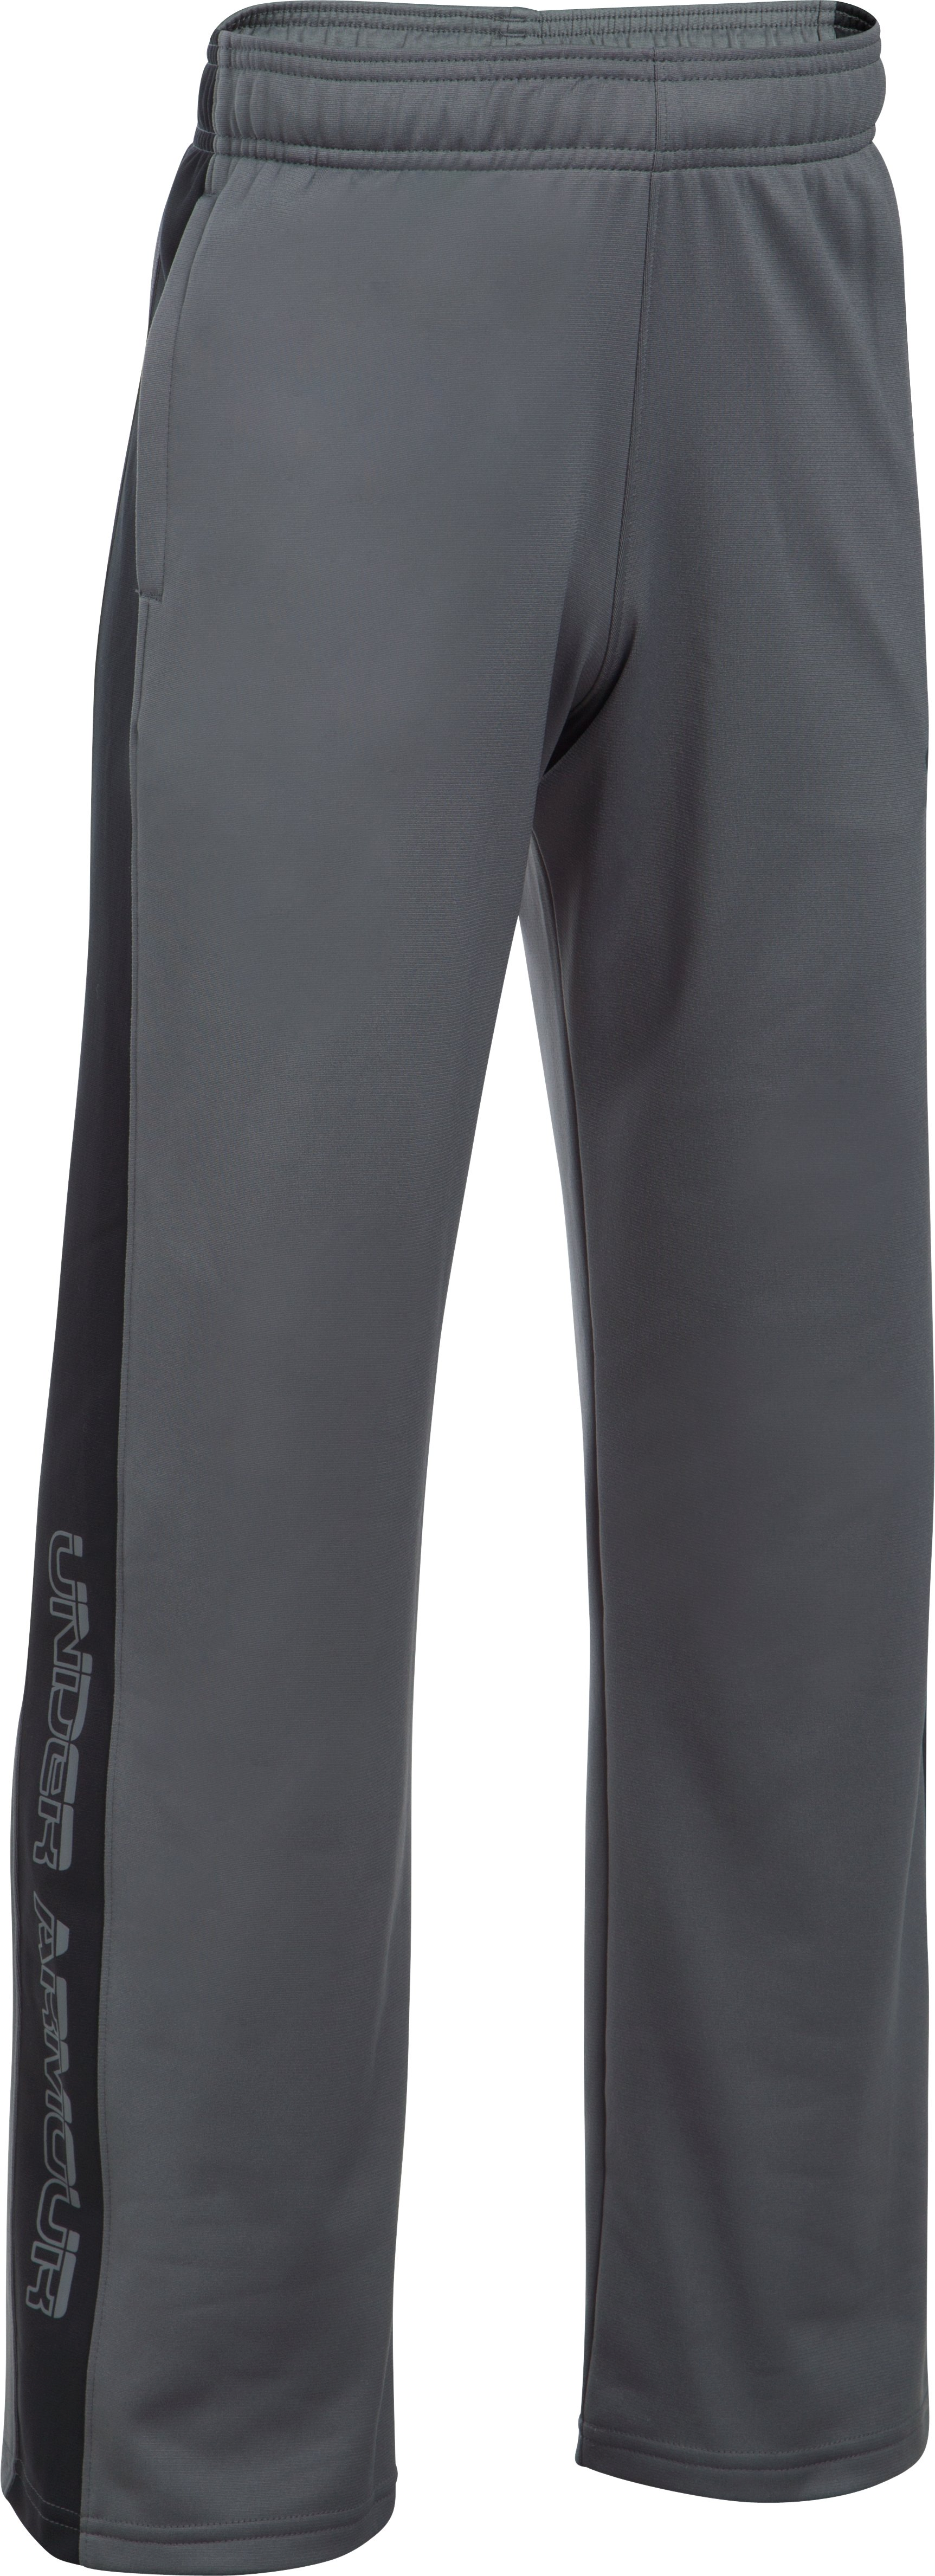 Boys' UA Kickstart Warm-Up Pants, Graphite